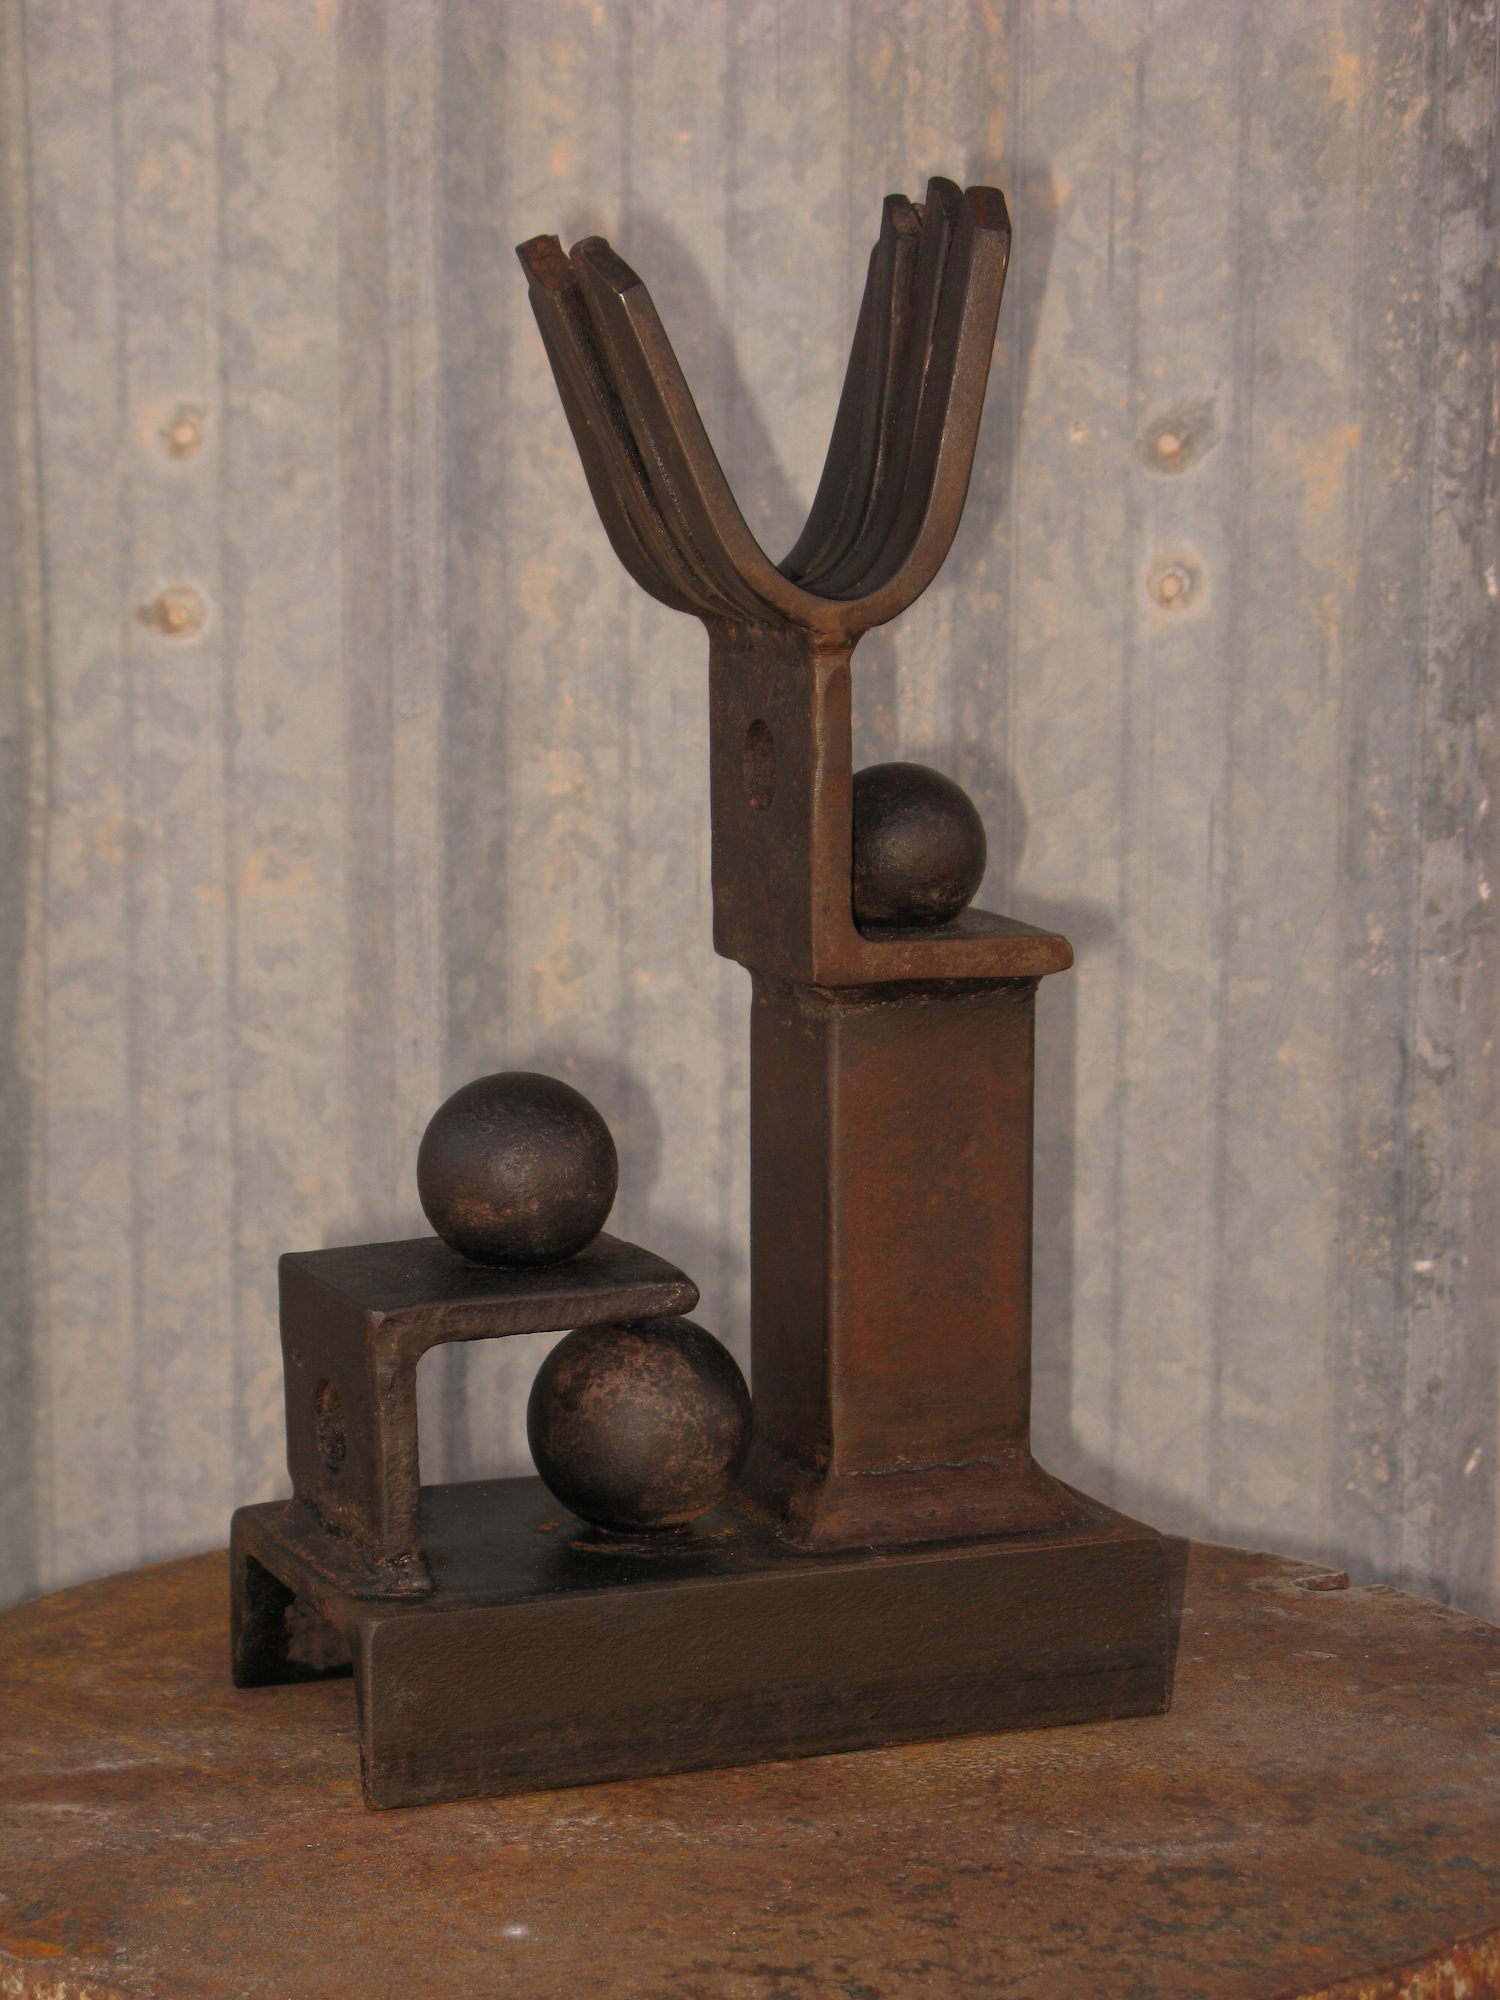 Composition with spheres